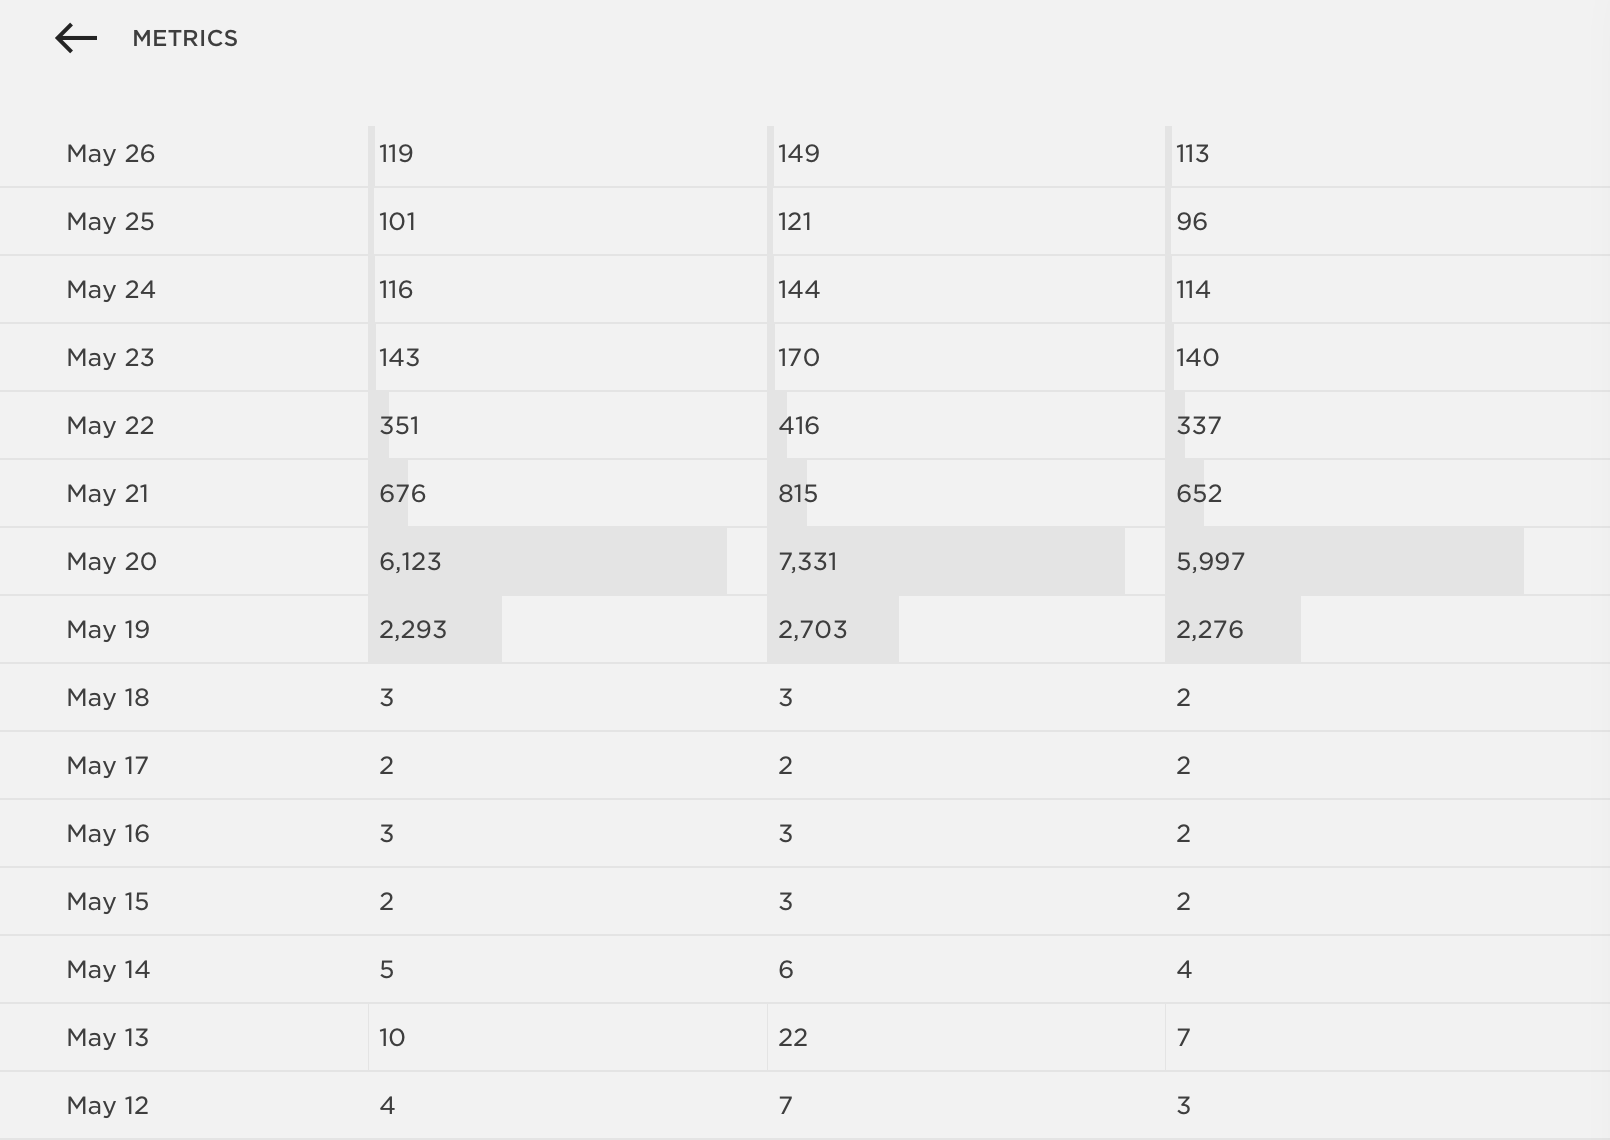 Left: Visits; Center: Page Views; Right: Audience Size (Squarespace's unique visitors measure). Please note what things looked like before May 19.